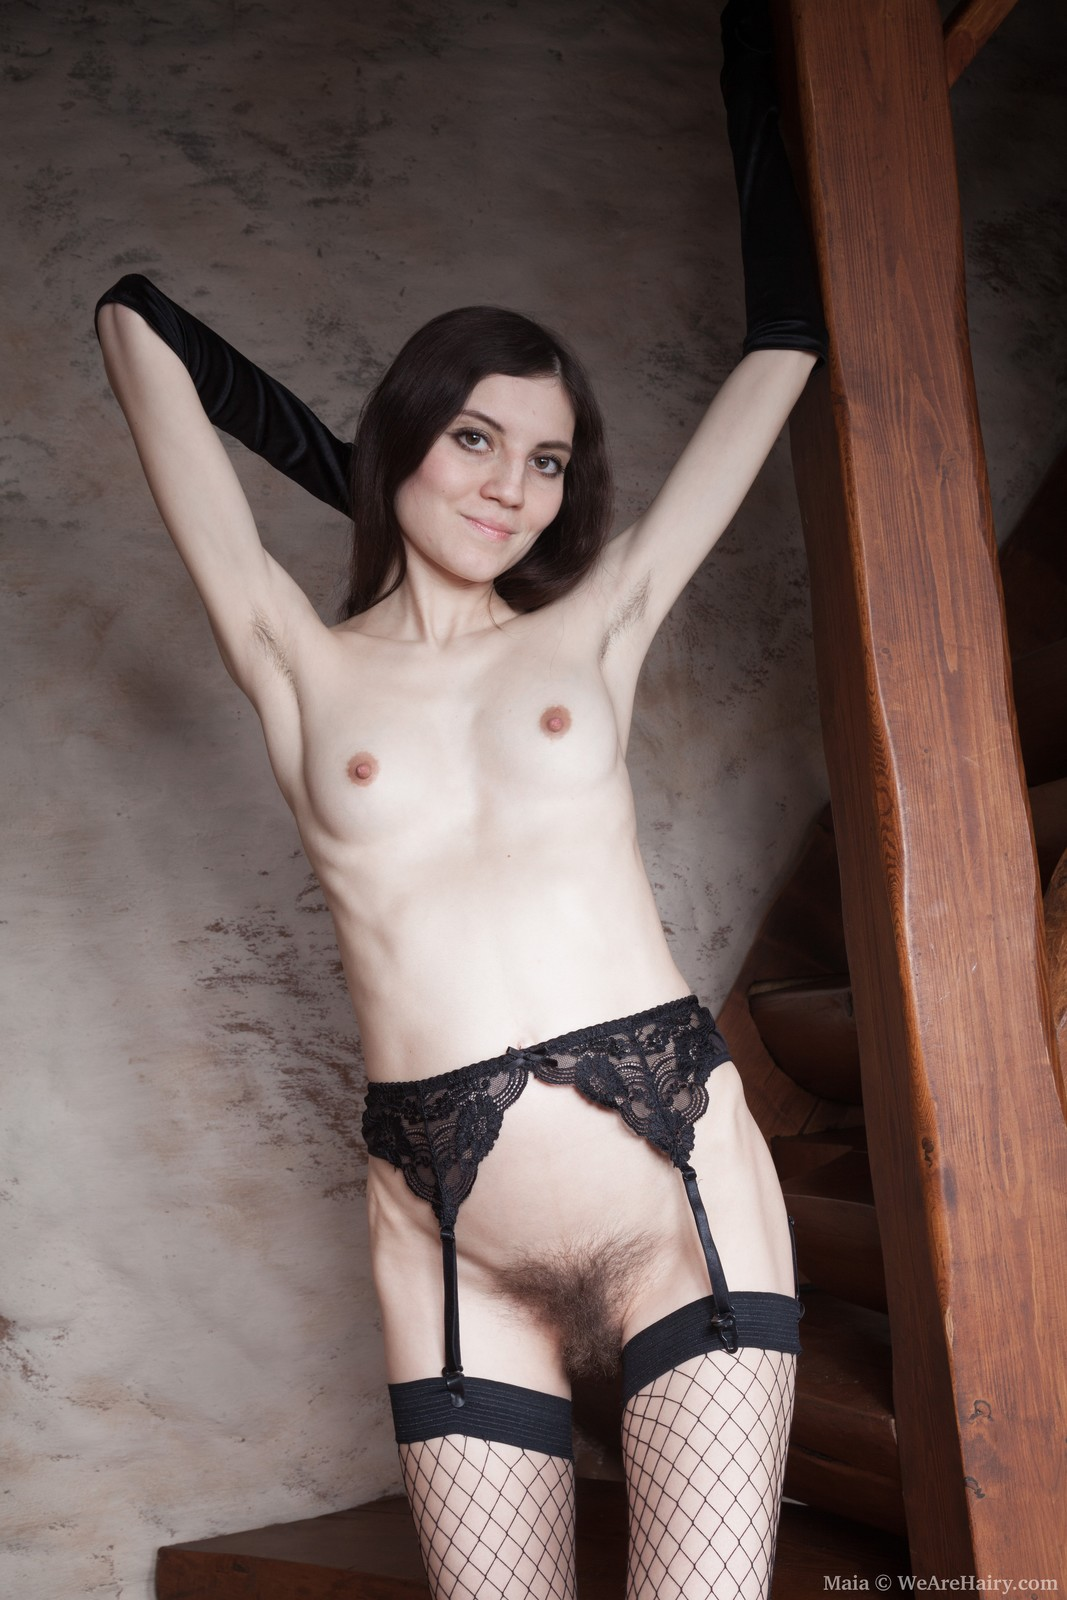 maia-strips-naked-showing-off-her-new-grey-hat5.jpg